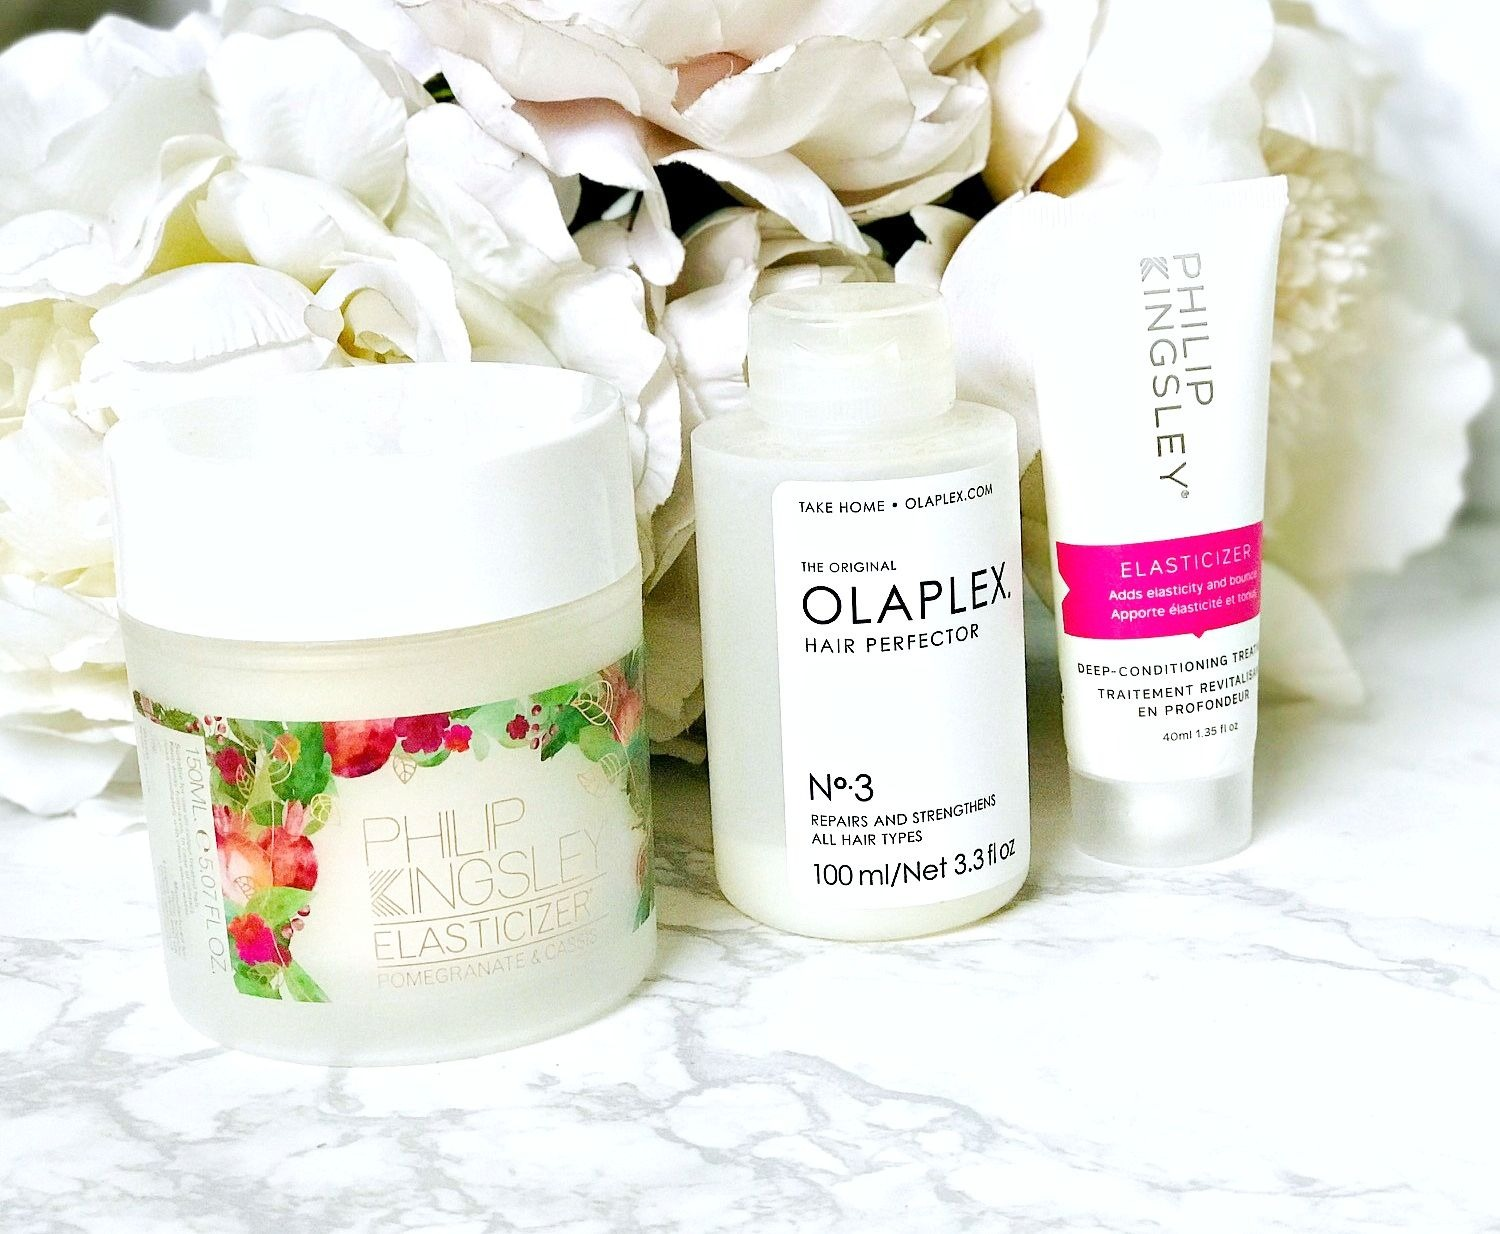 Philip Kingsley Elasticizer VS Olaplex No 3 Which is better?